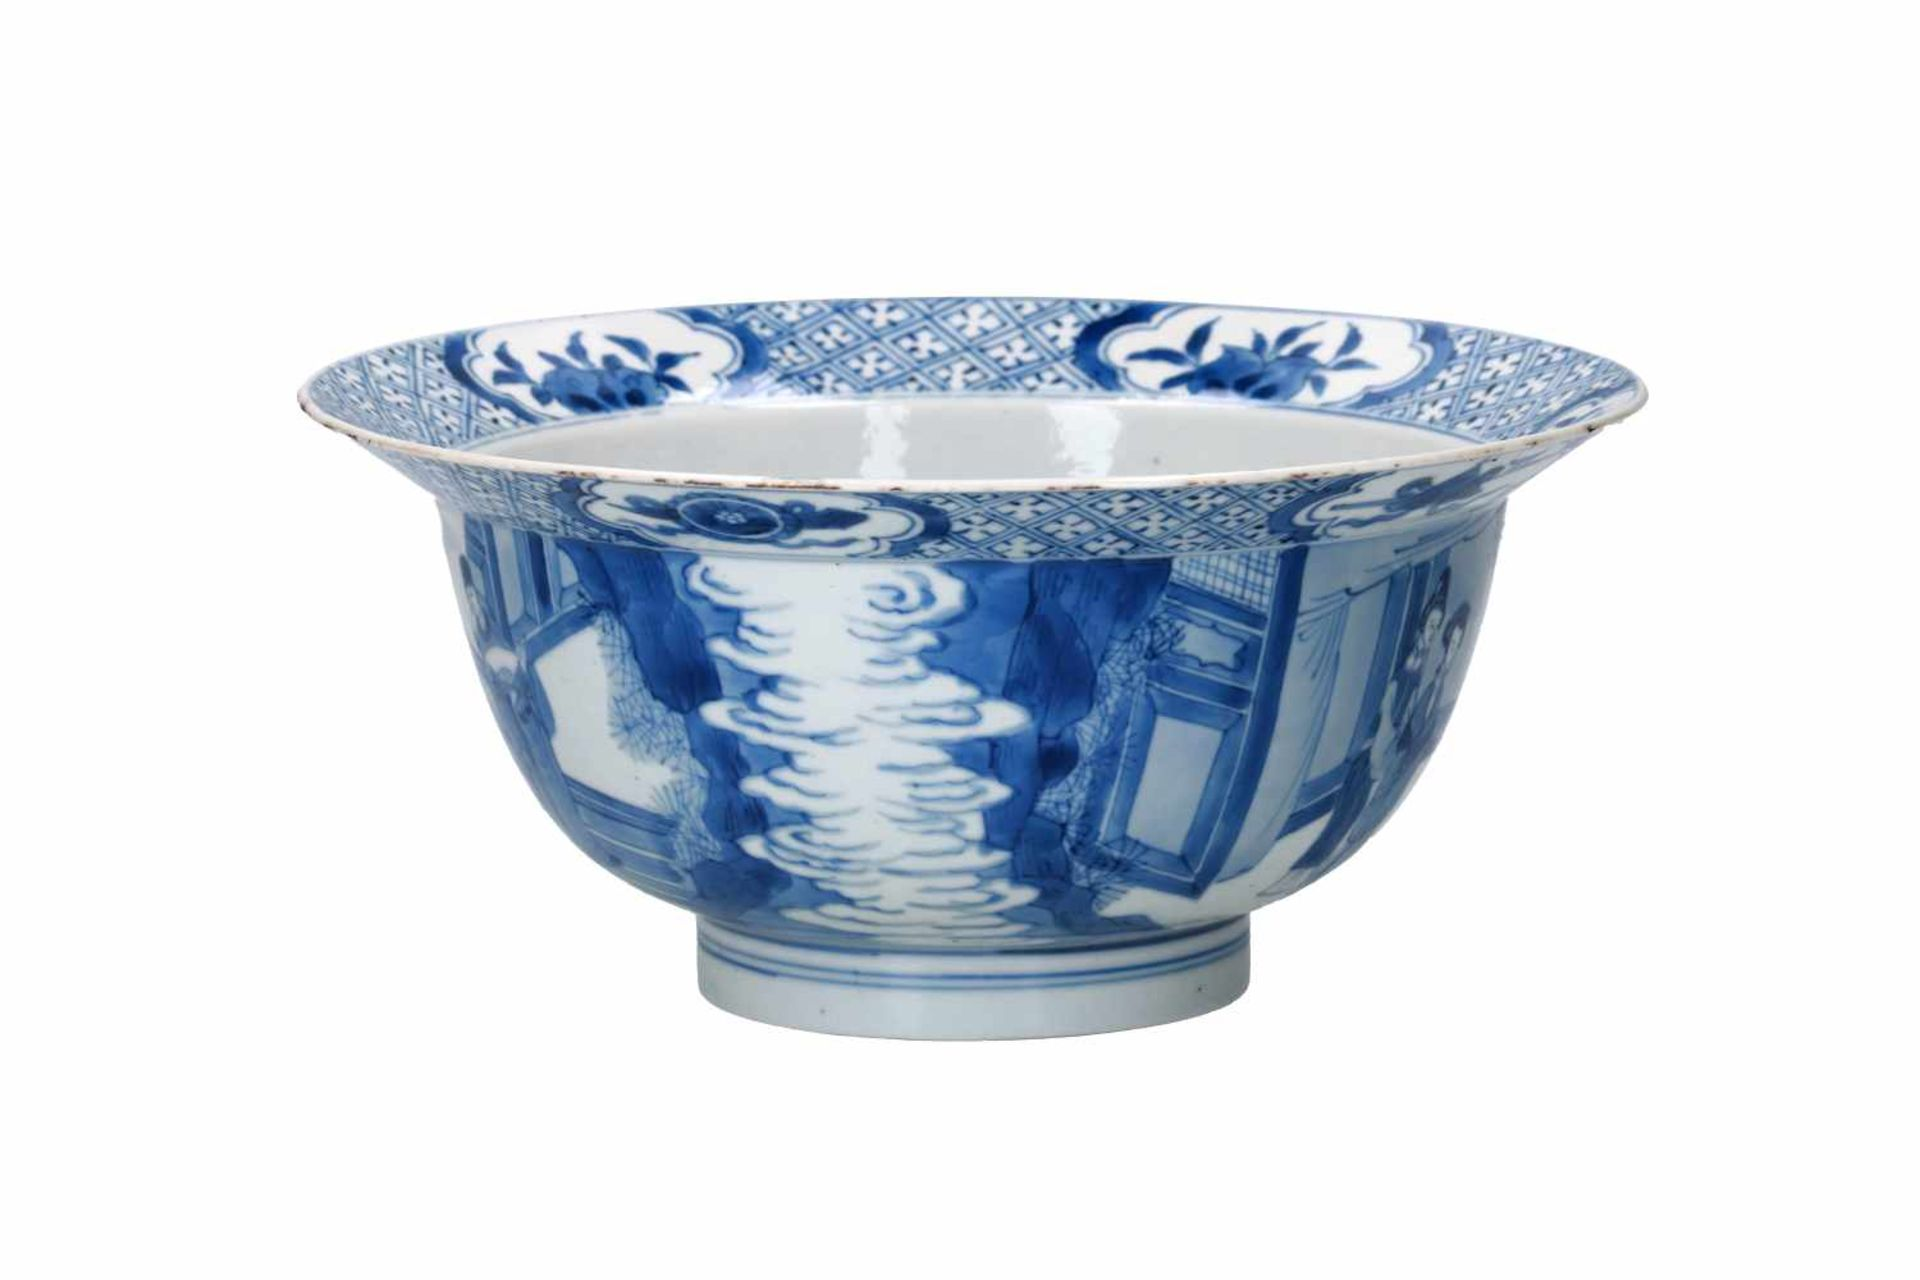 A blue and white porcelain 'klapmuts' bowl, decorated with scenes of the Romance of the Western - Bild 2 aus 6